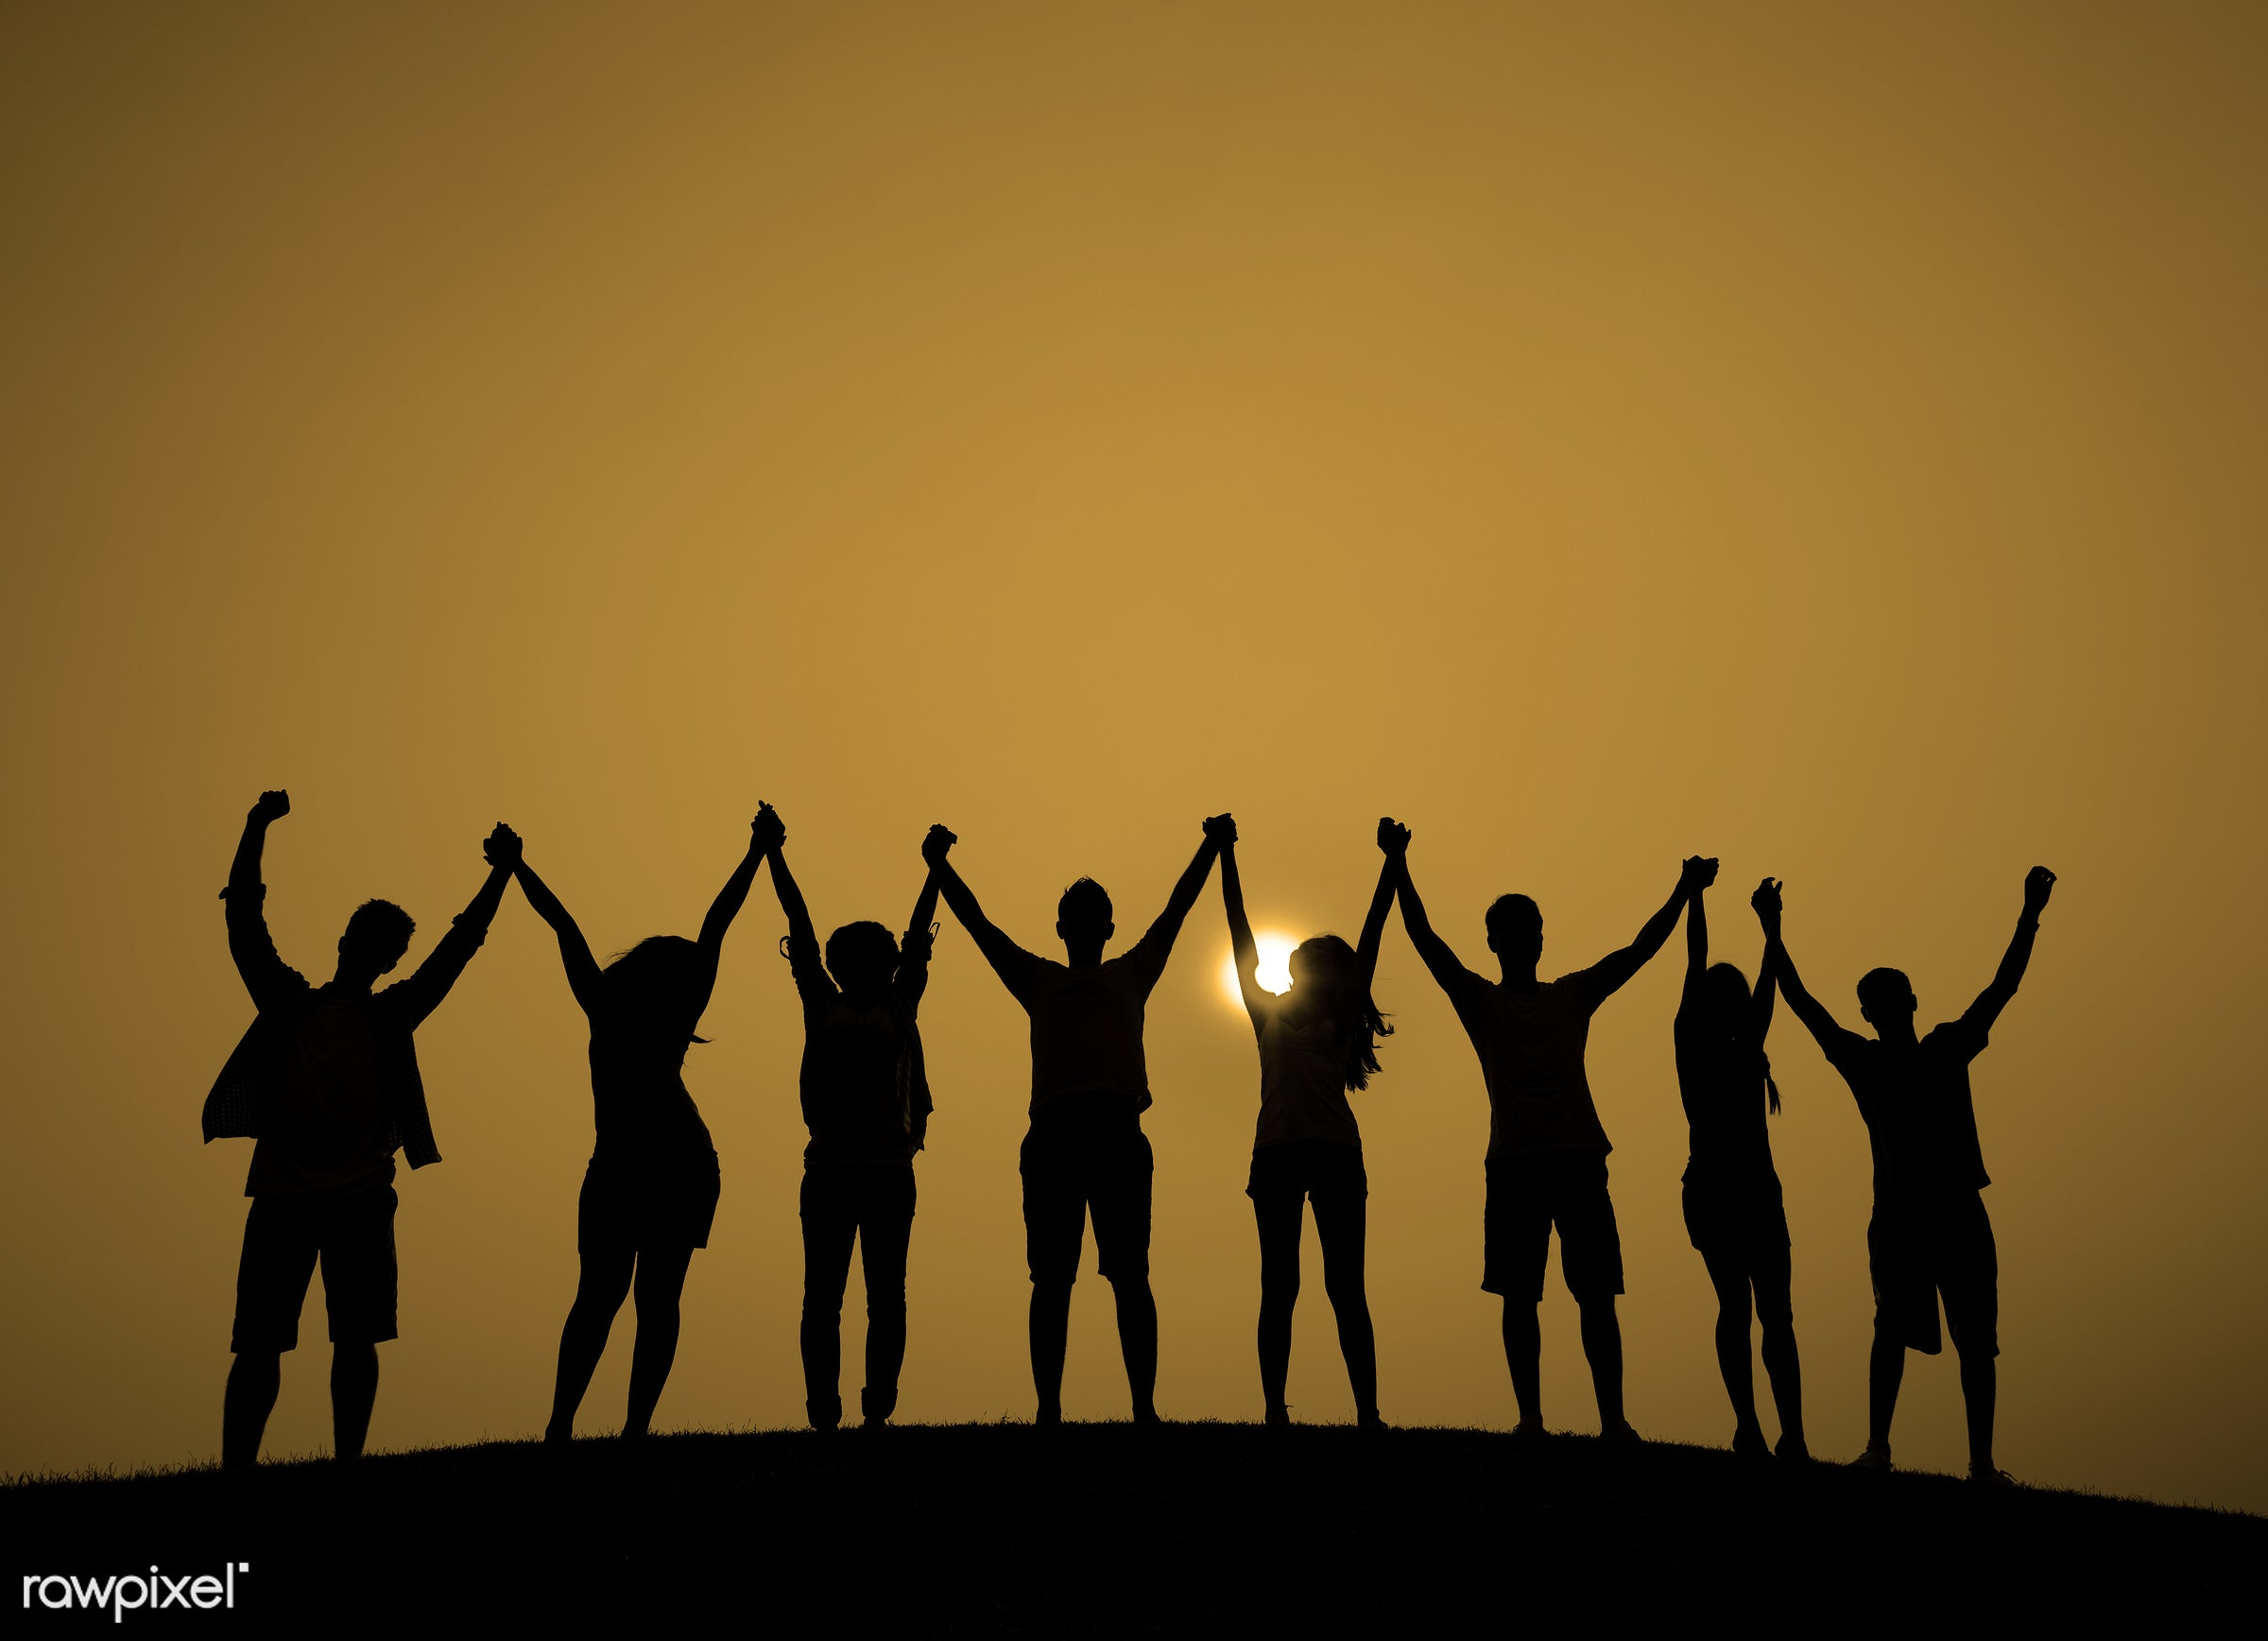 achievement, arms outstretched, arms raised, backlit, casual, celebration, cheerful, color image, community, teamwork, group...